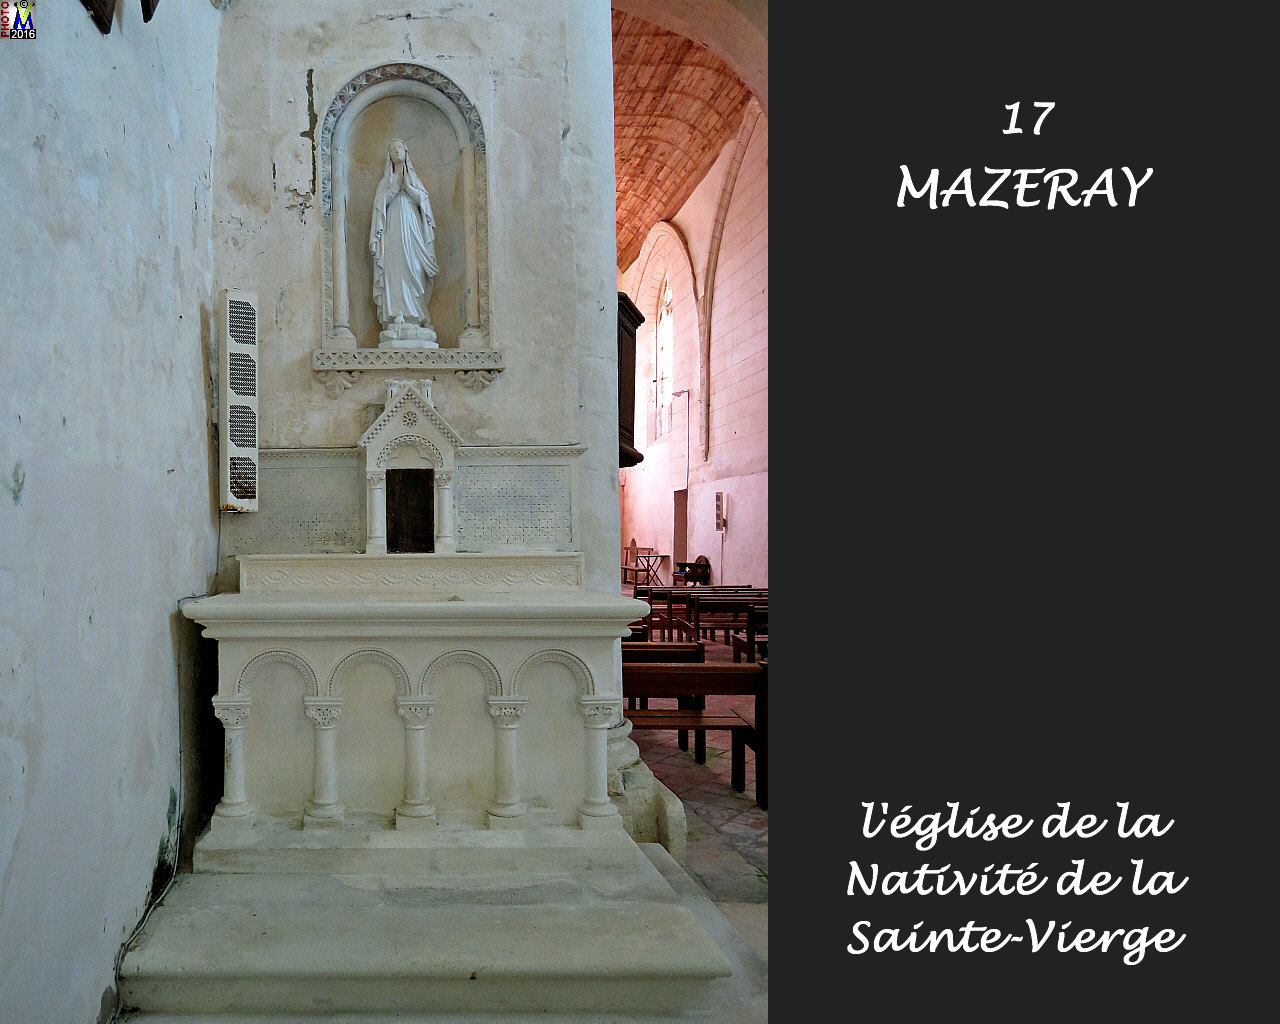 17MAZERAY_eglise_1124.jpg